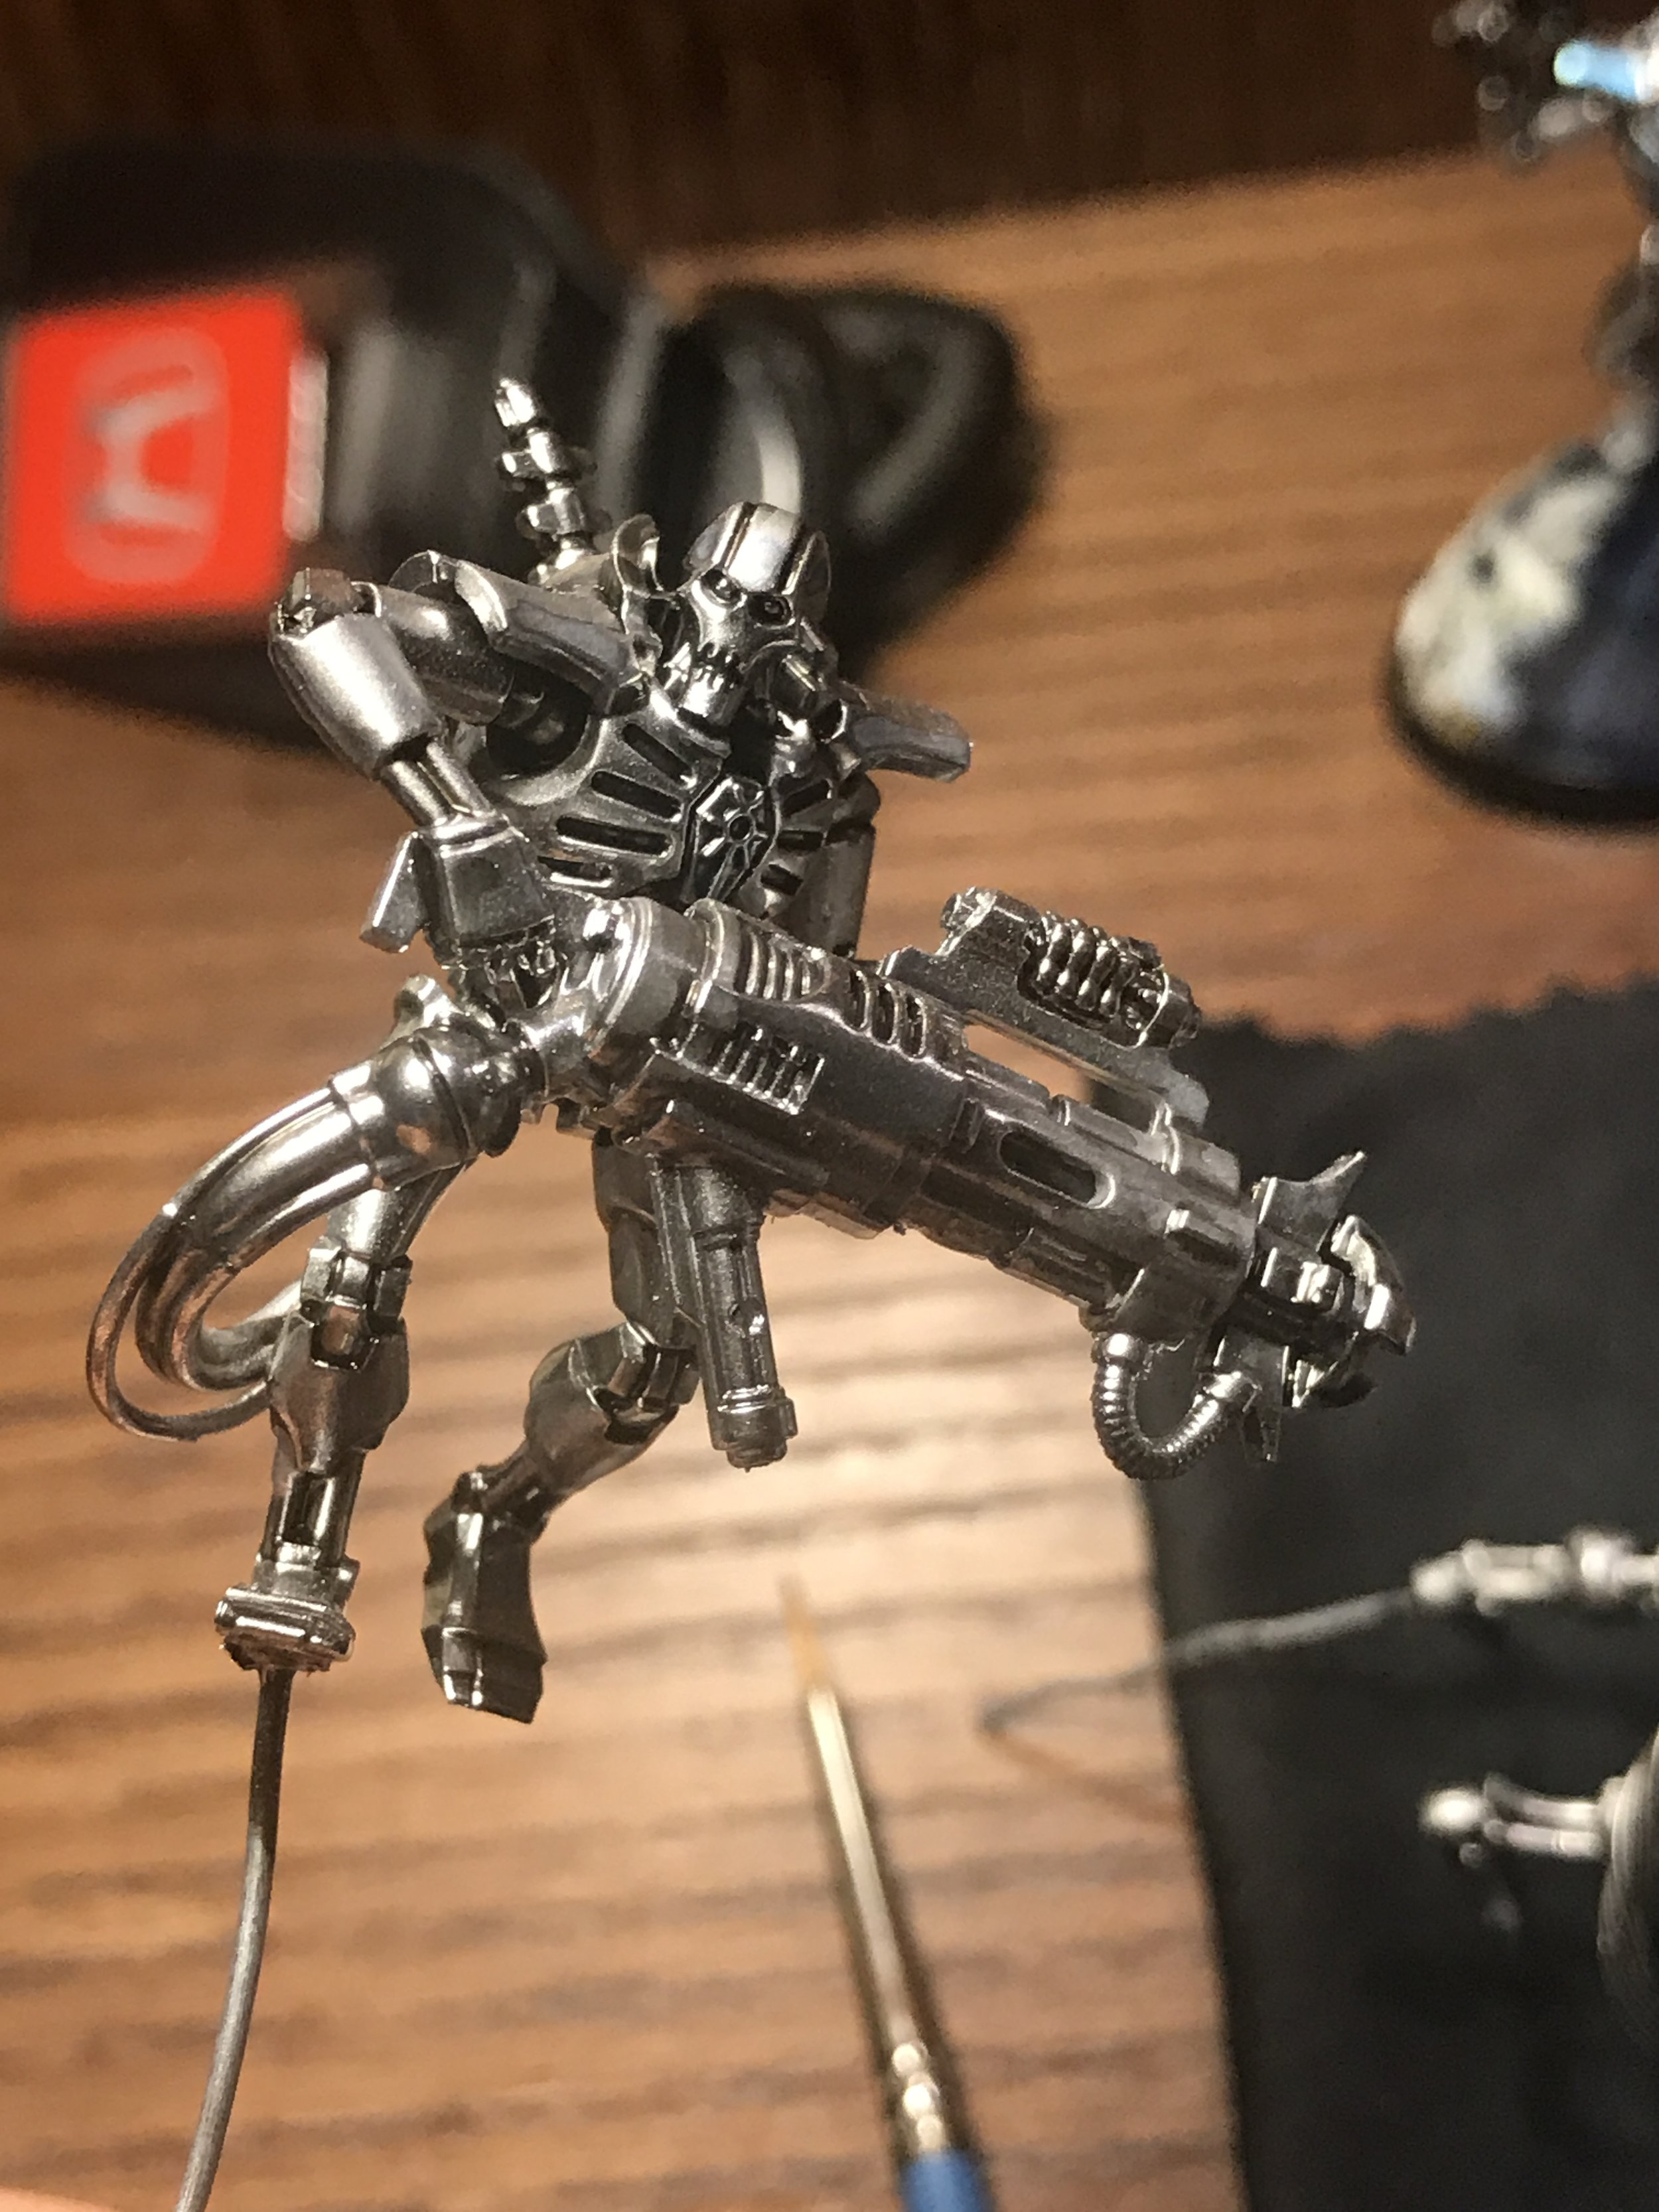 Neat application of gloss nuln oil